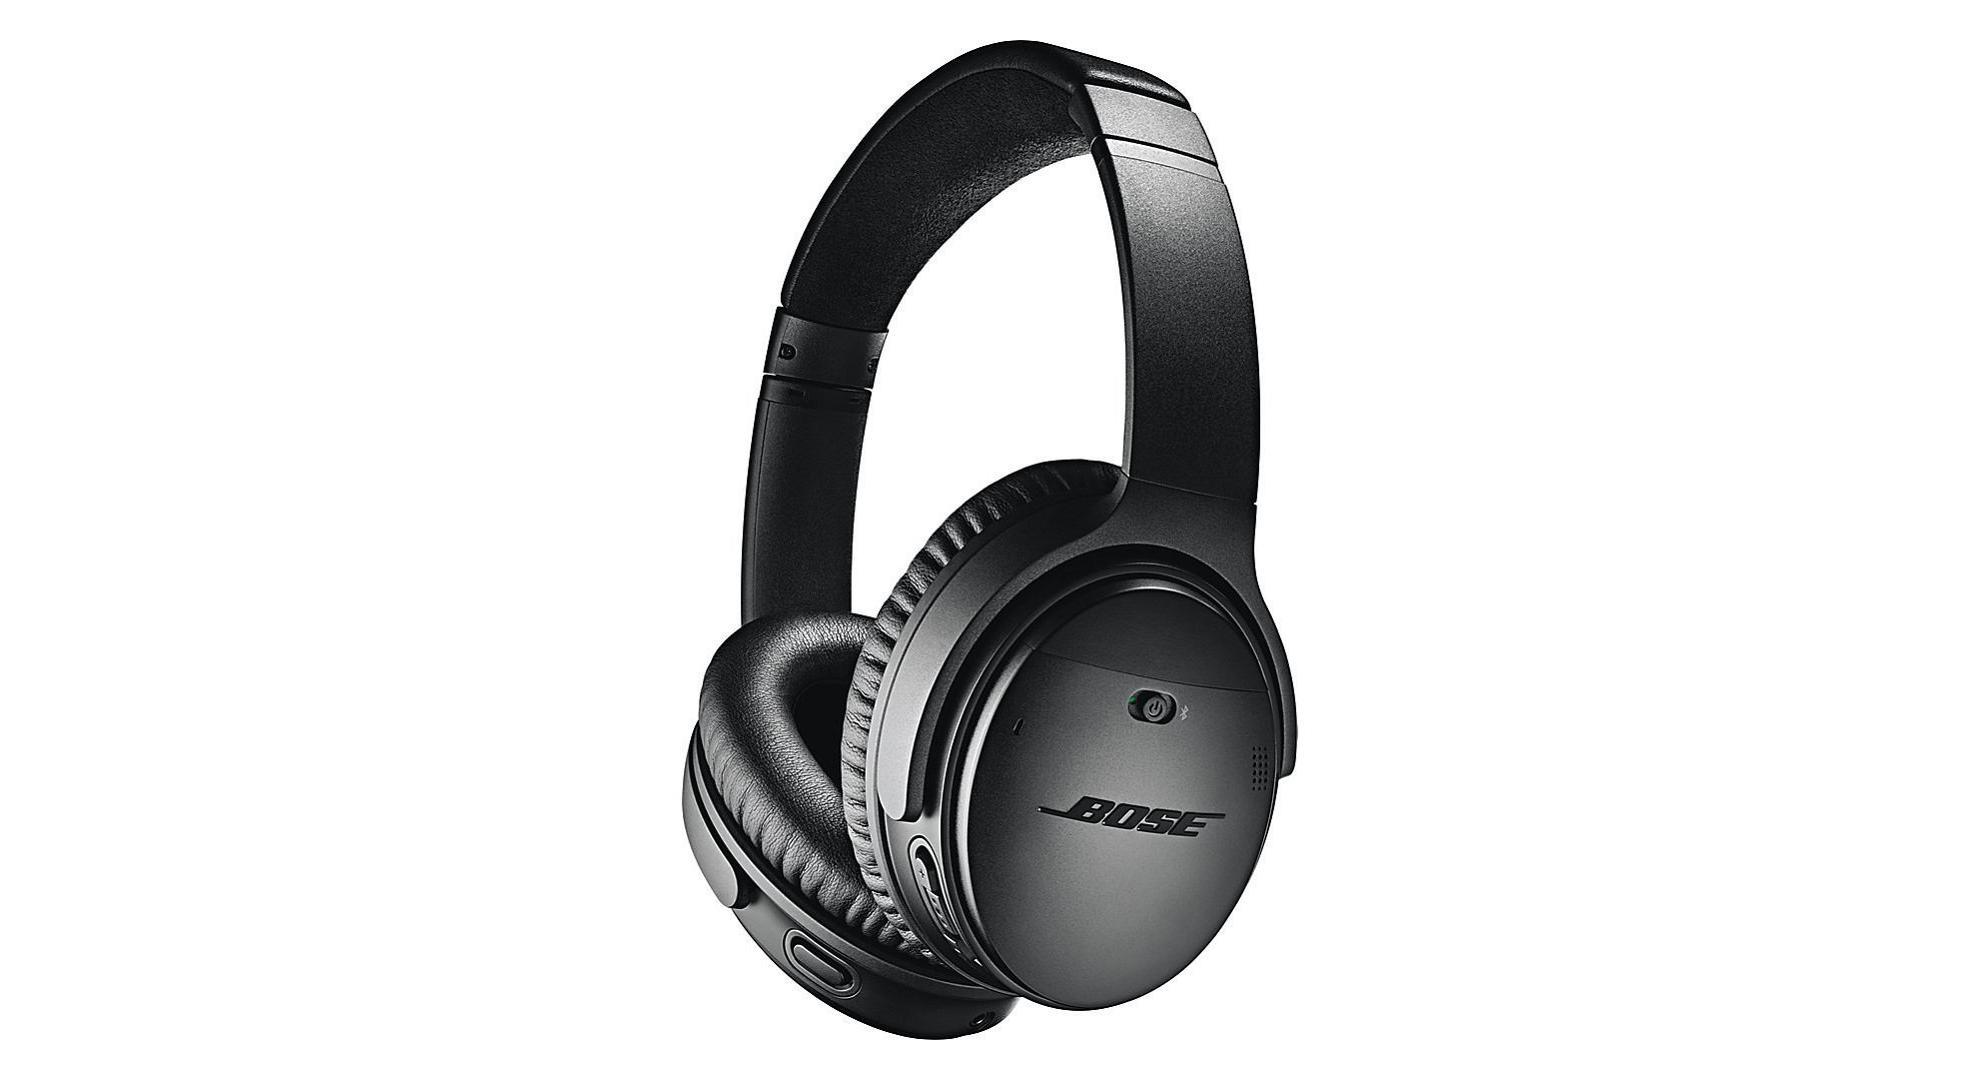 🔥 Bon plan : le casque Bose QuietComfort 35 II descend à 279 euros